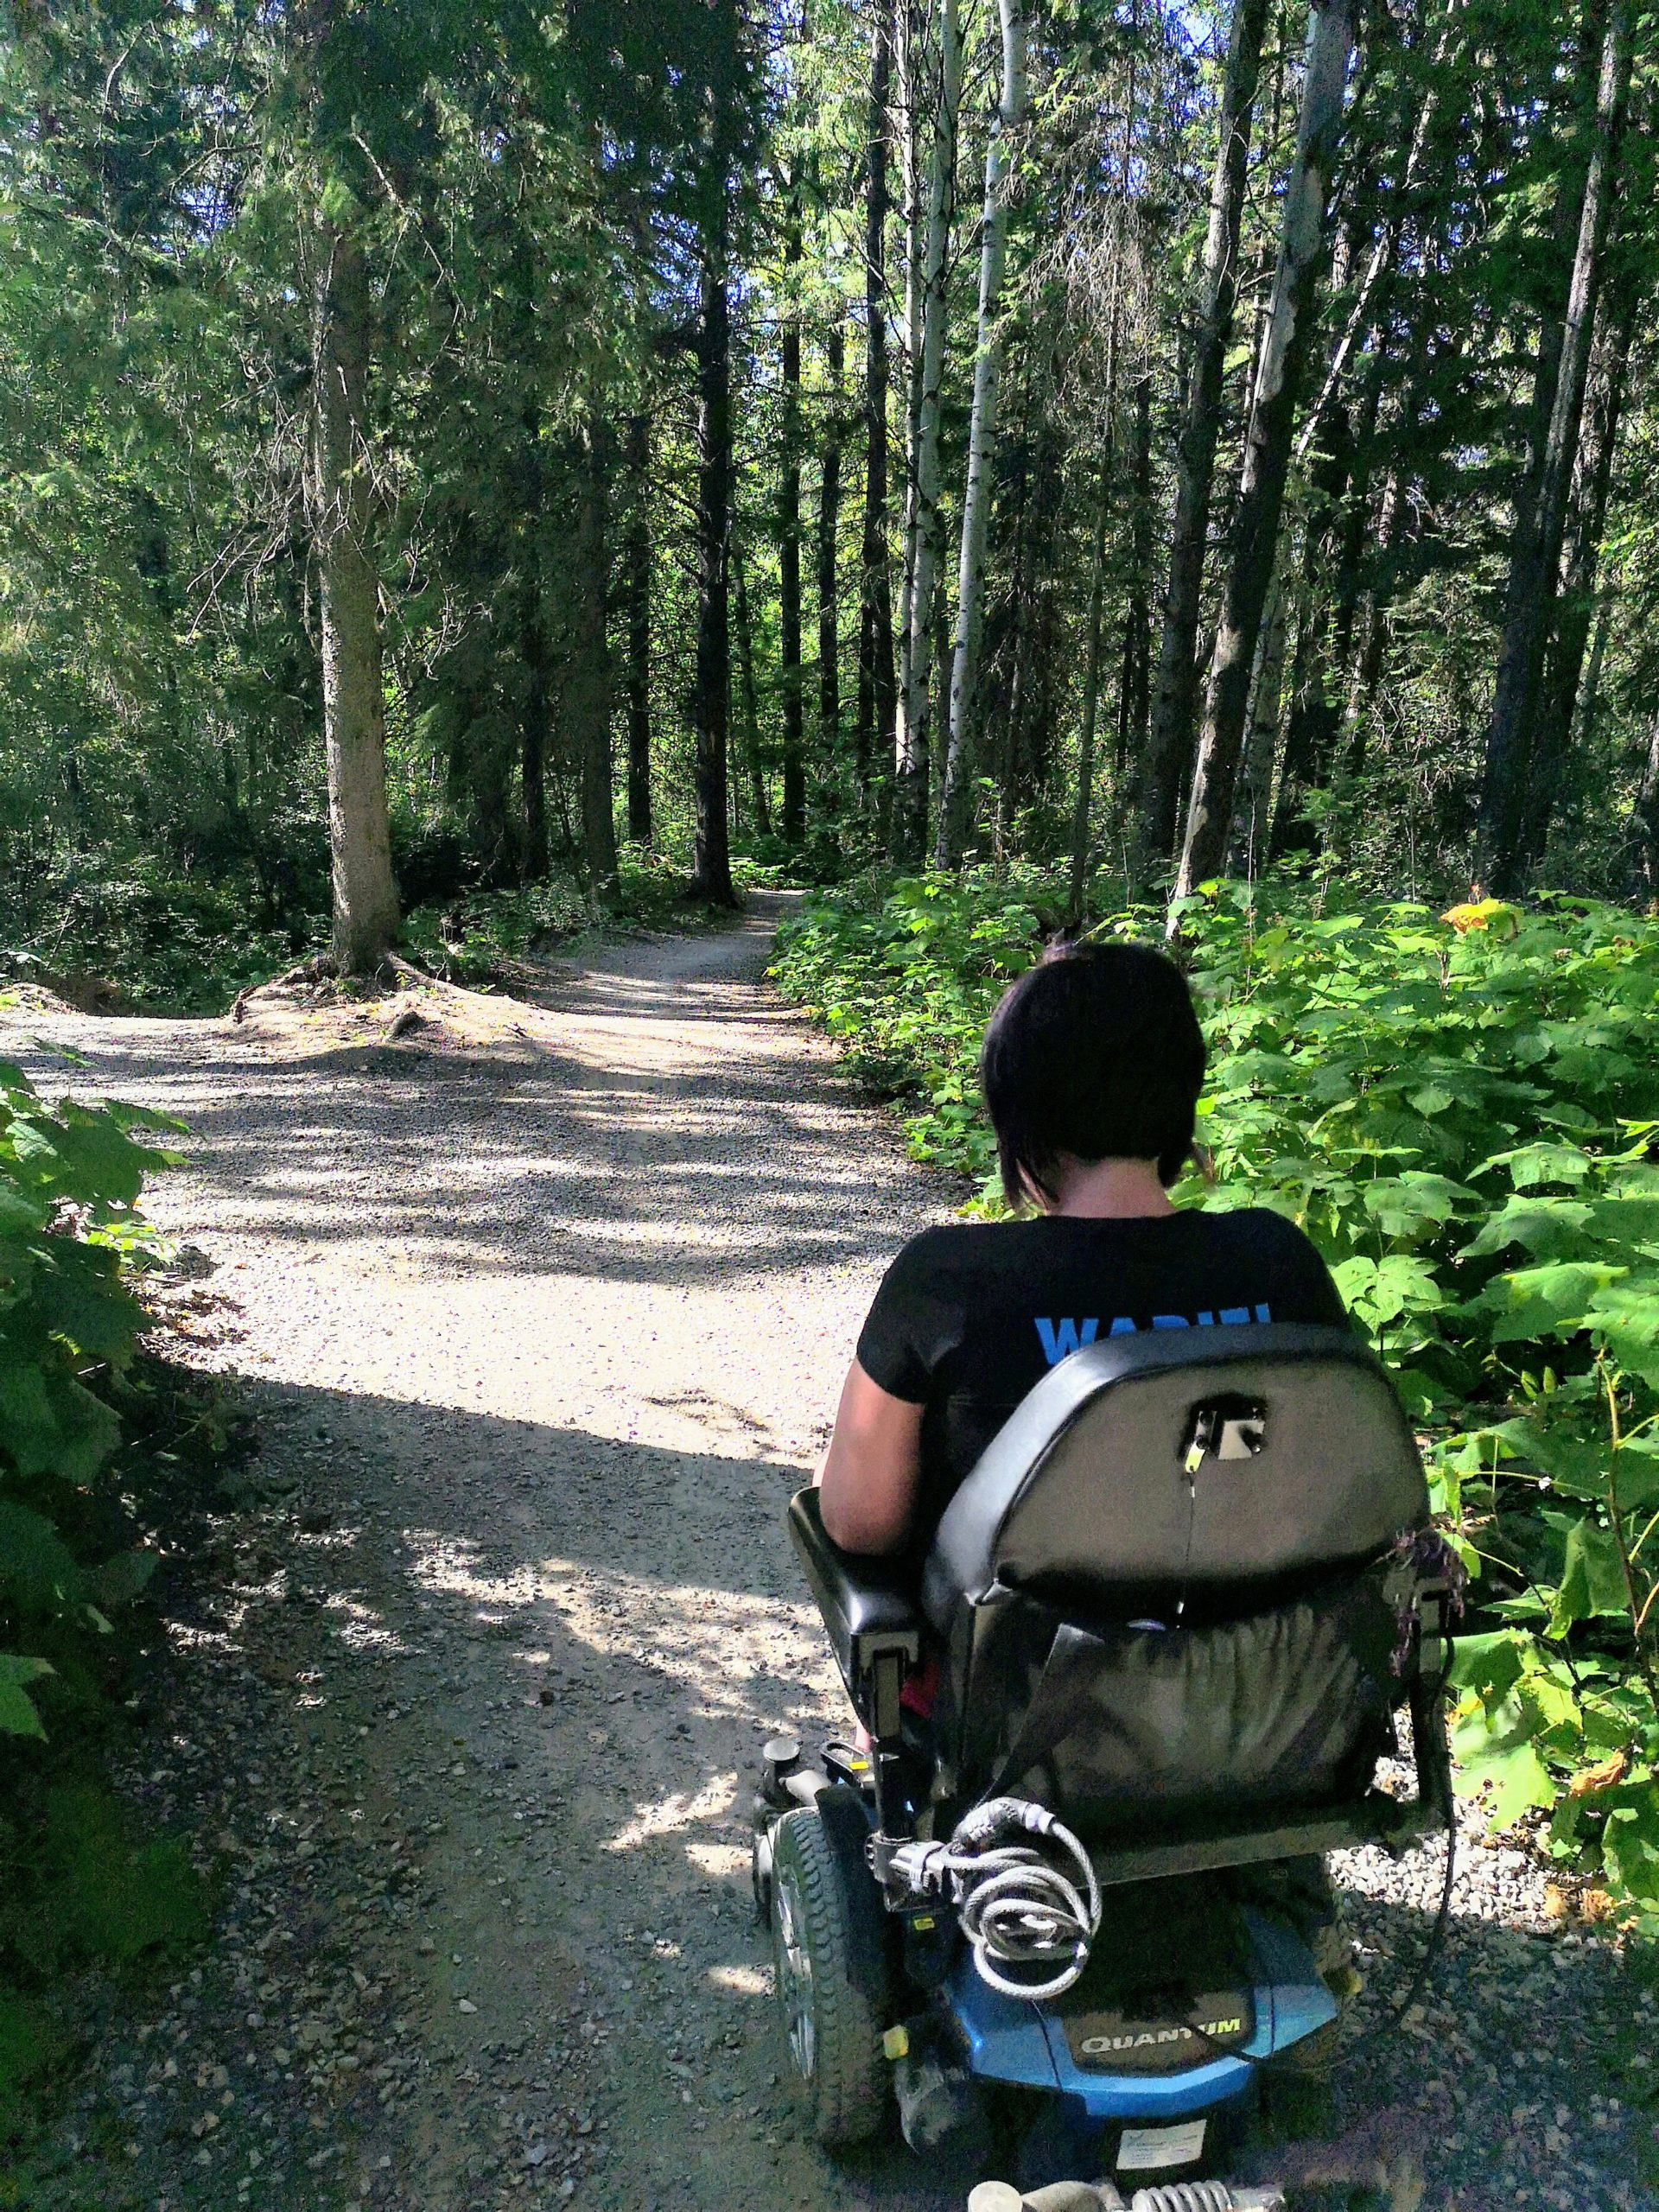 A woman navigates through a forest trail on a moterized chair